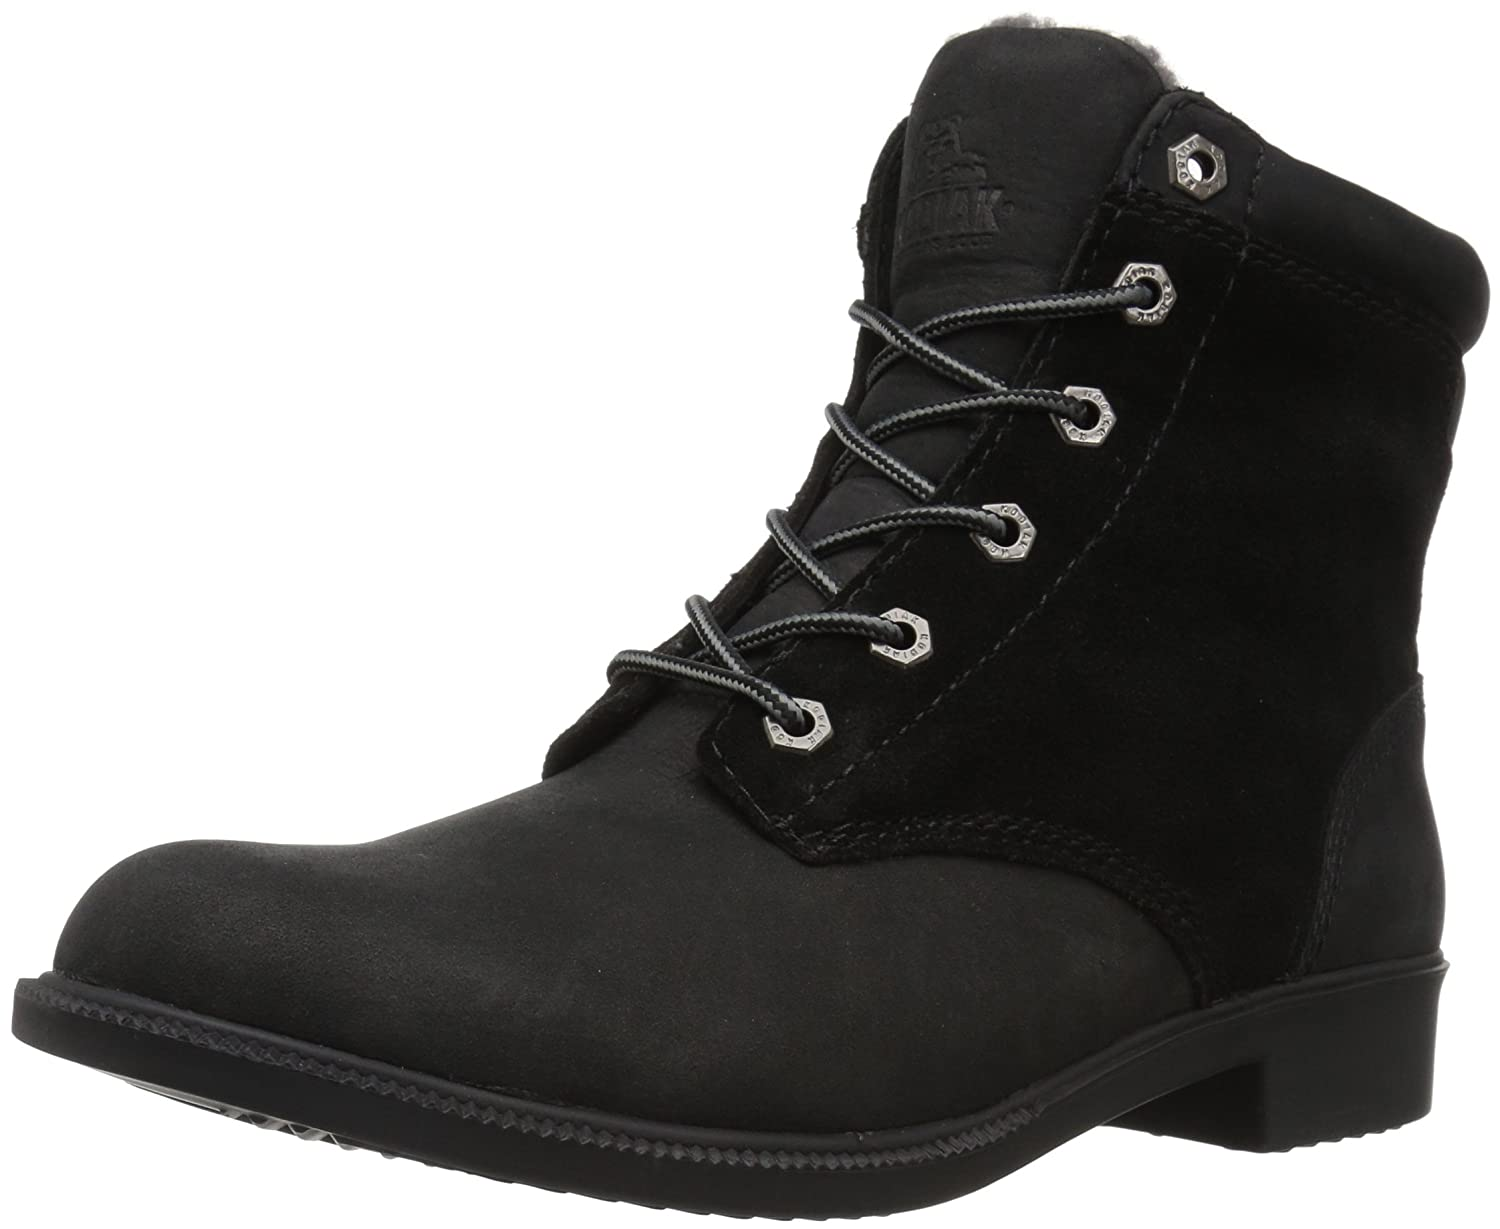 Kodiak Women's Original Fleece Ankle Boot B072596R3S 11 M US|Black